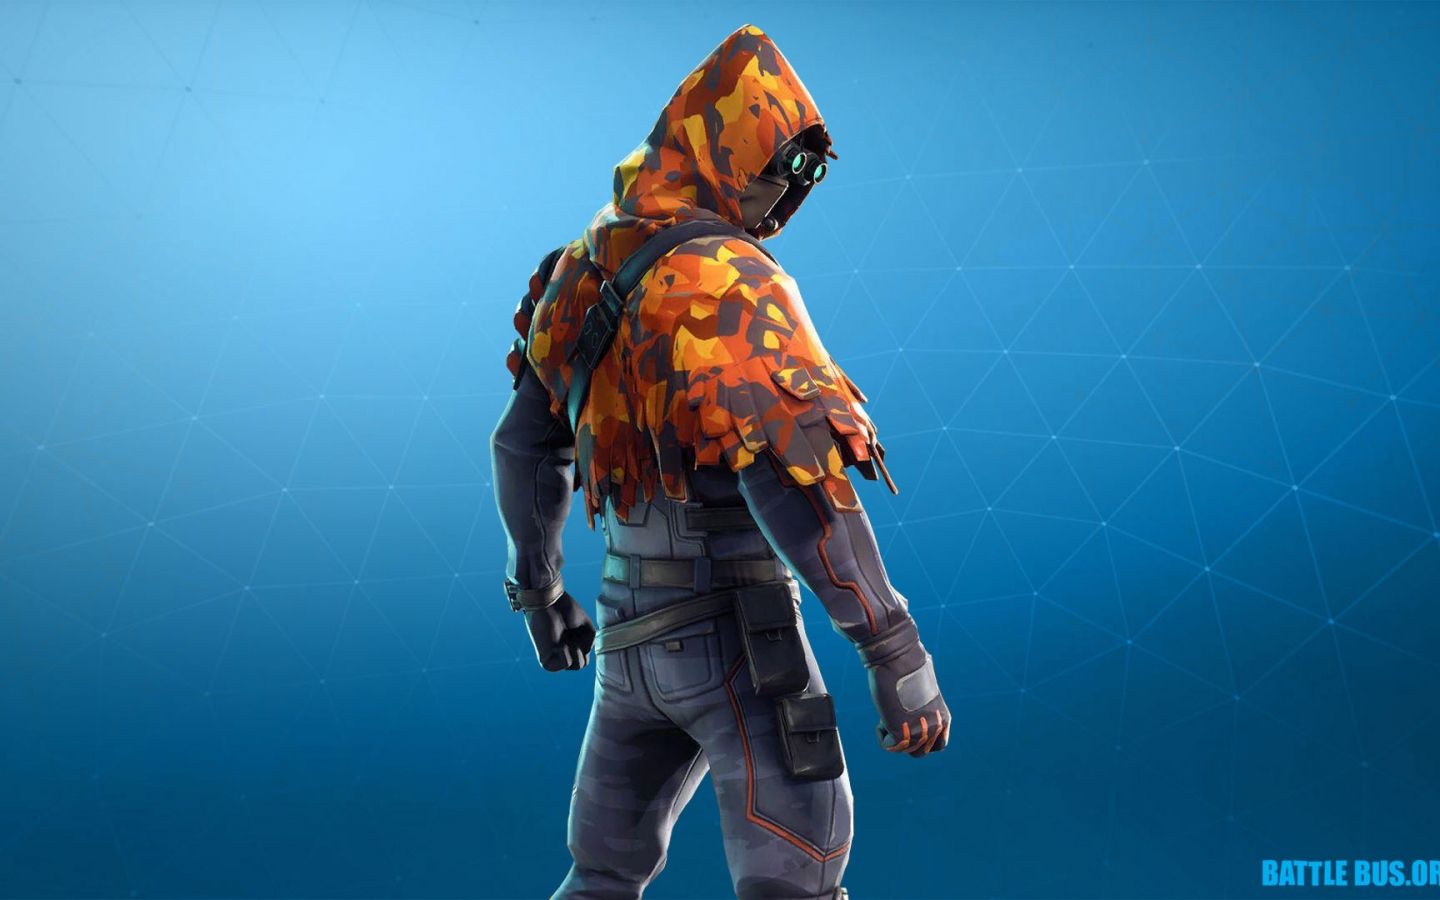 download New Ranged Recon Set Longshot and Insight Fortnite 1440x900